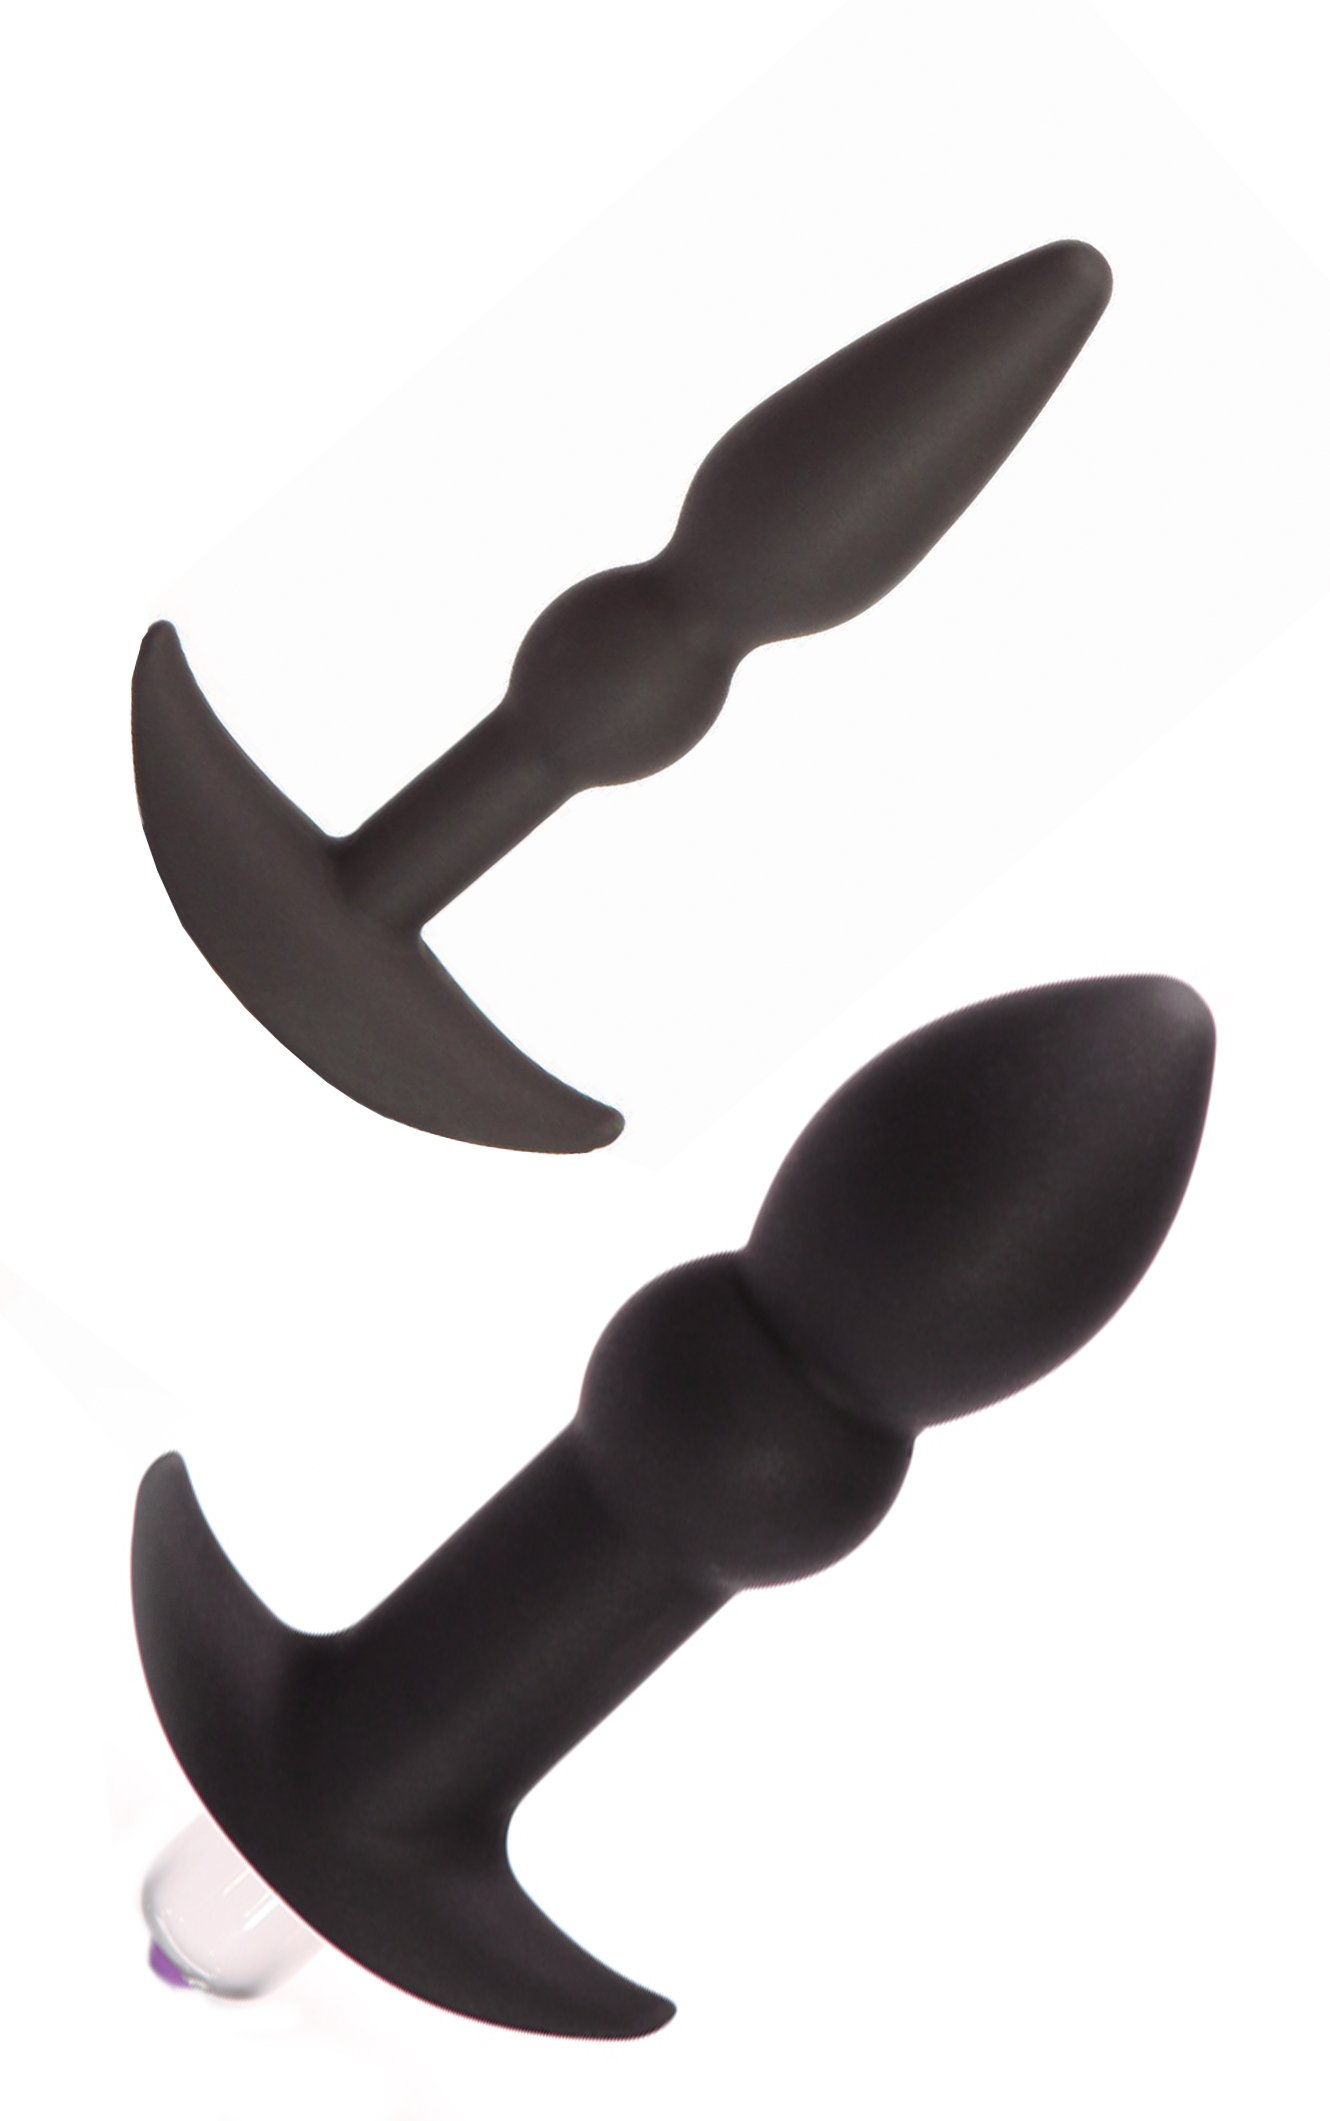 Tantus Perfect Plug Kit - Ultra-Premium Silicone Anal Butt Plugs - Black